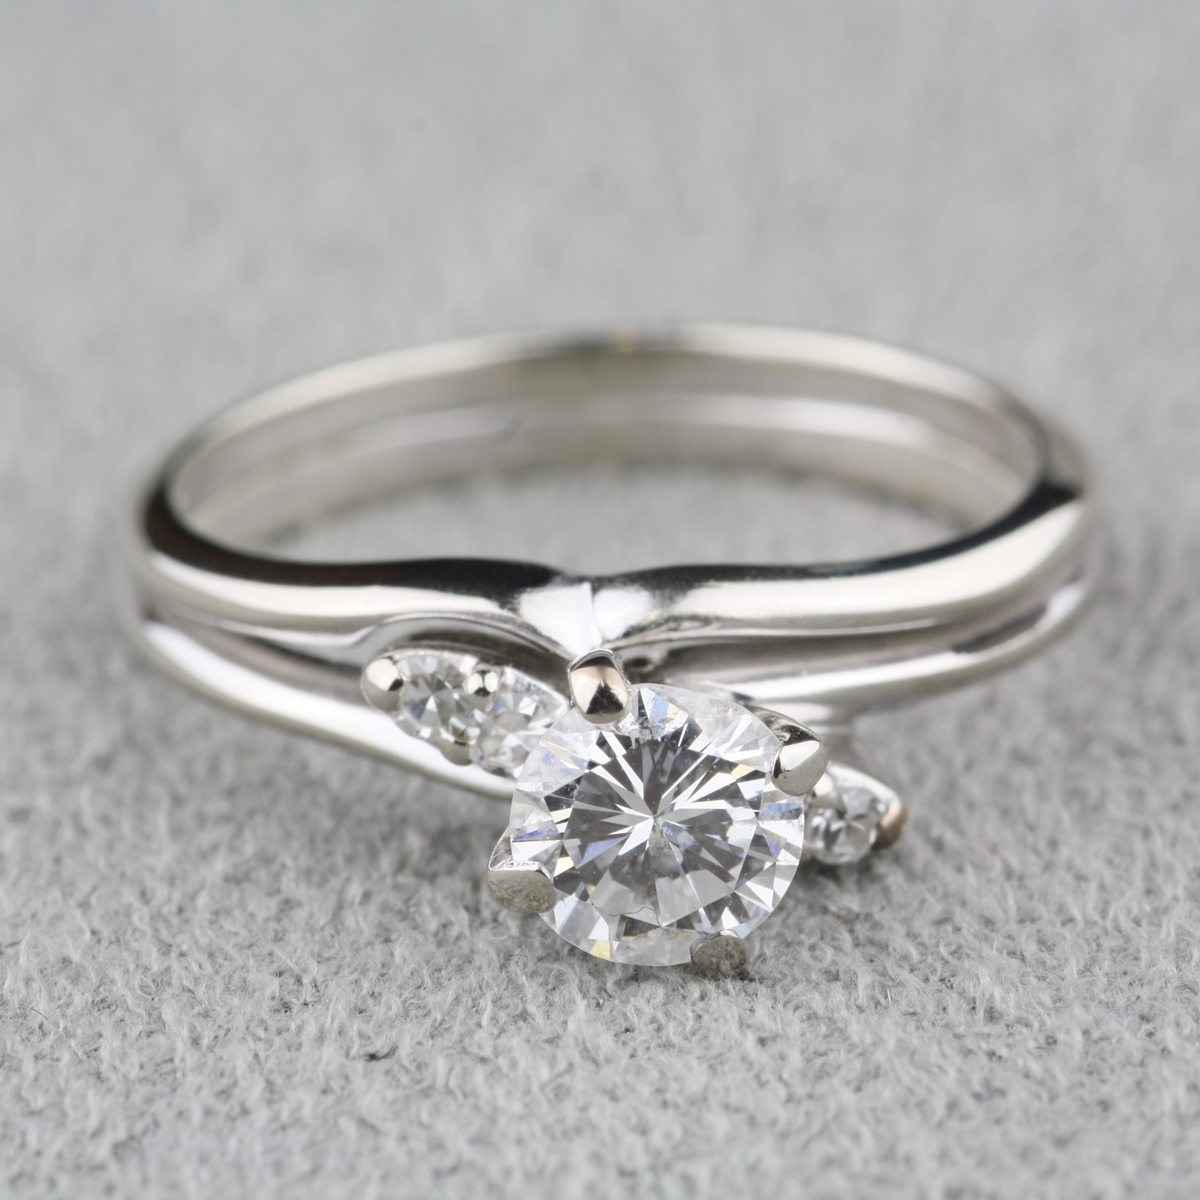 pre owned diamond engagement ring with 14 karat white gold wedding band. Black Bedroom Furniture Sets. Home Design Ideas